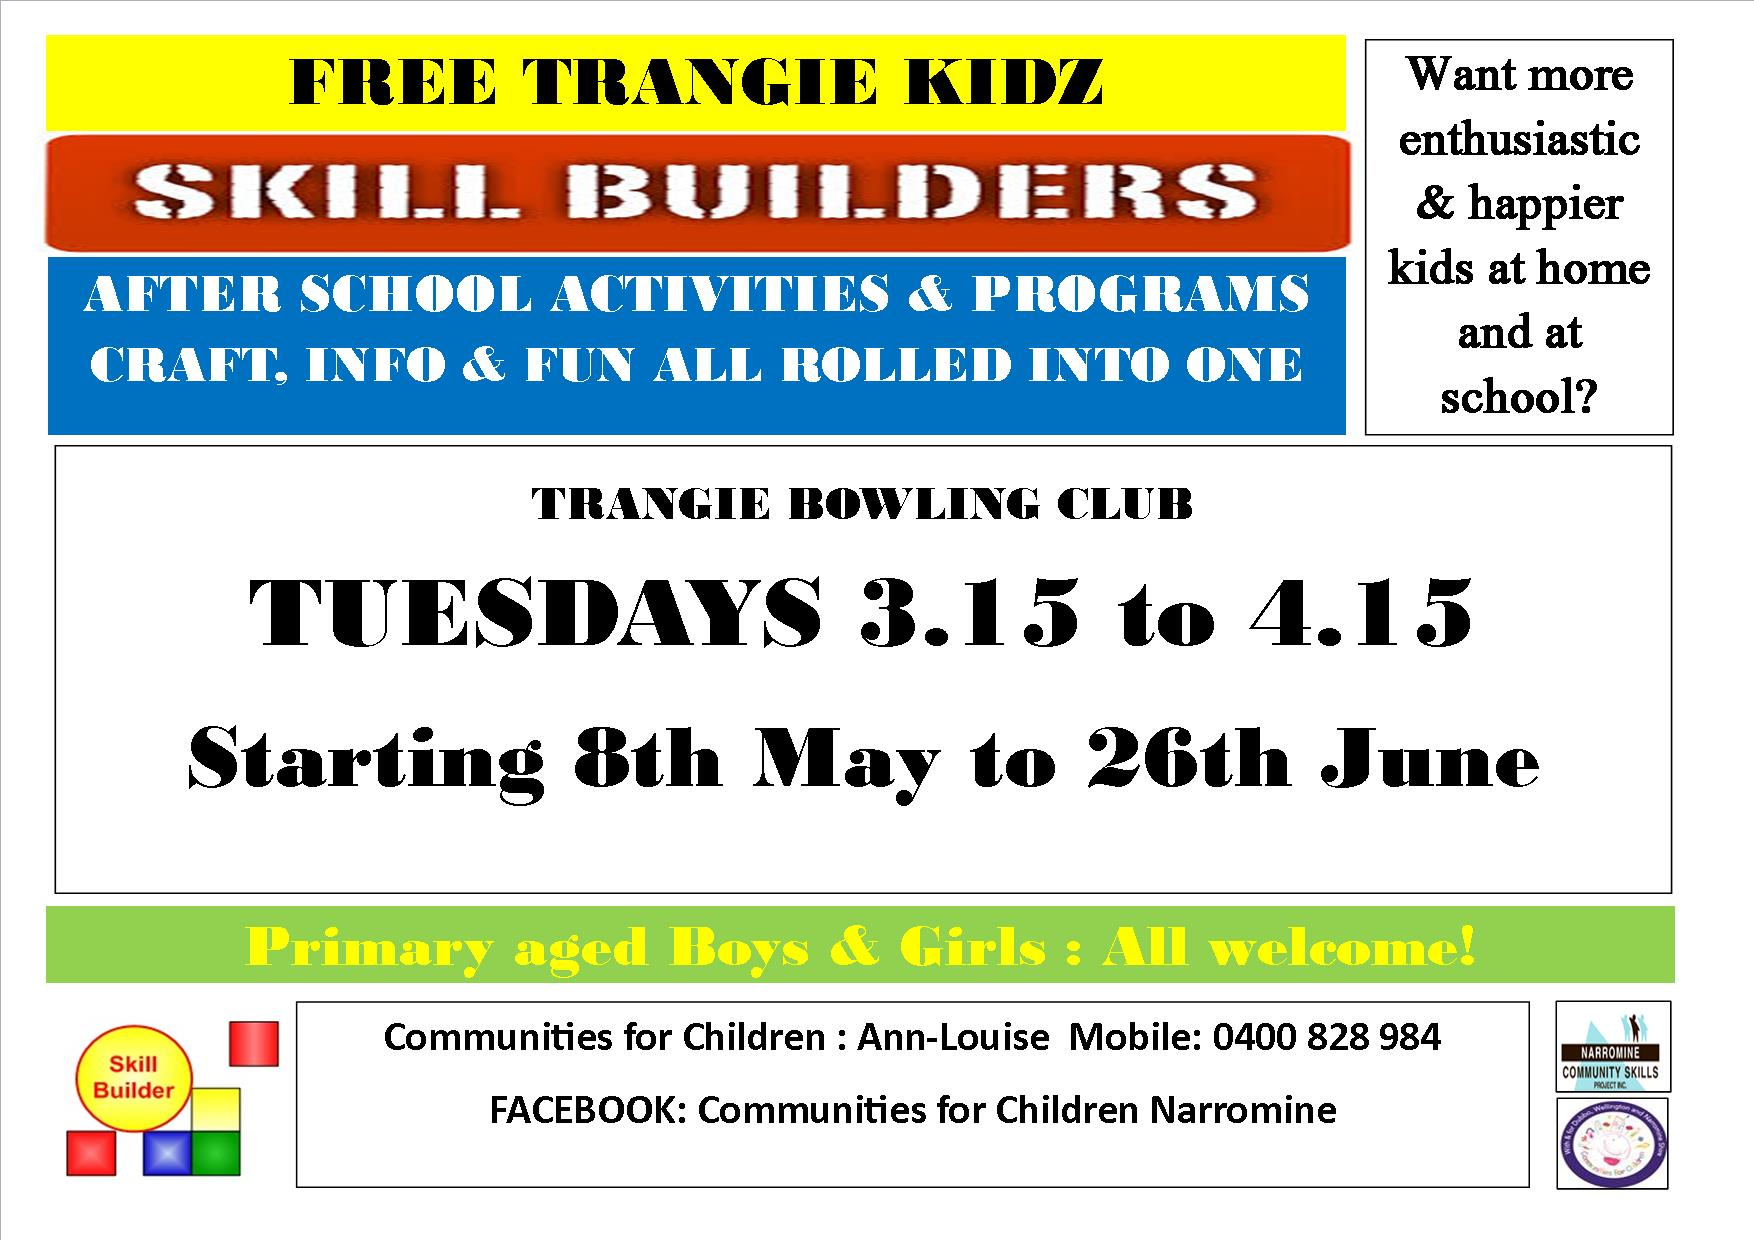 Trangie Kidz Skill Builders Afternoon Activities by Communities for Children